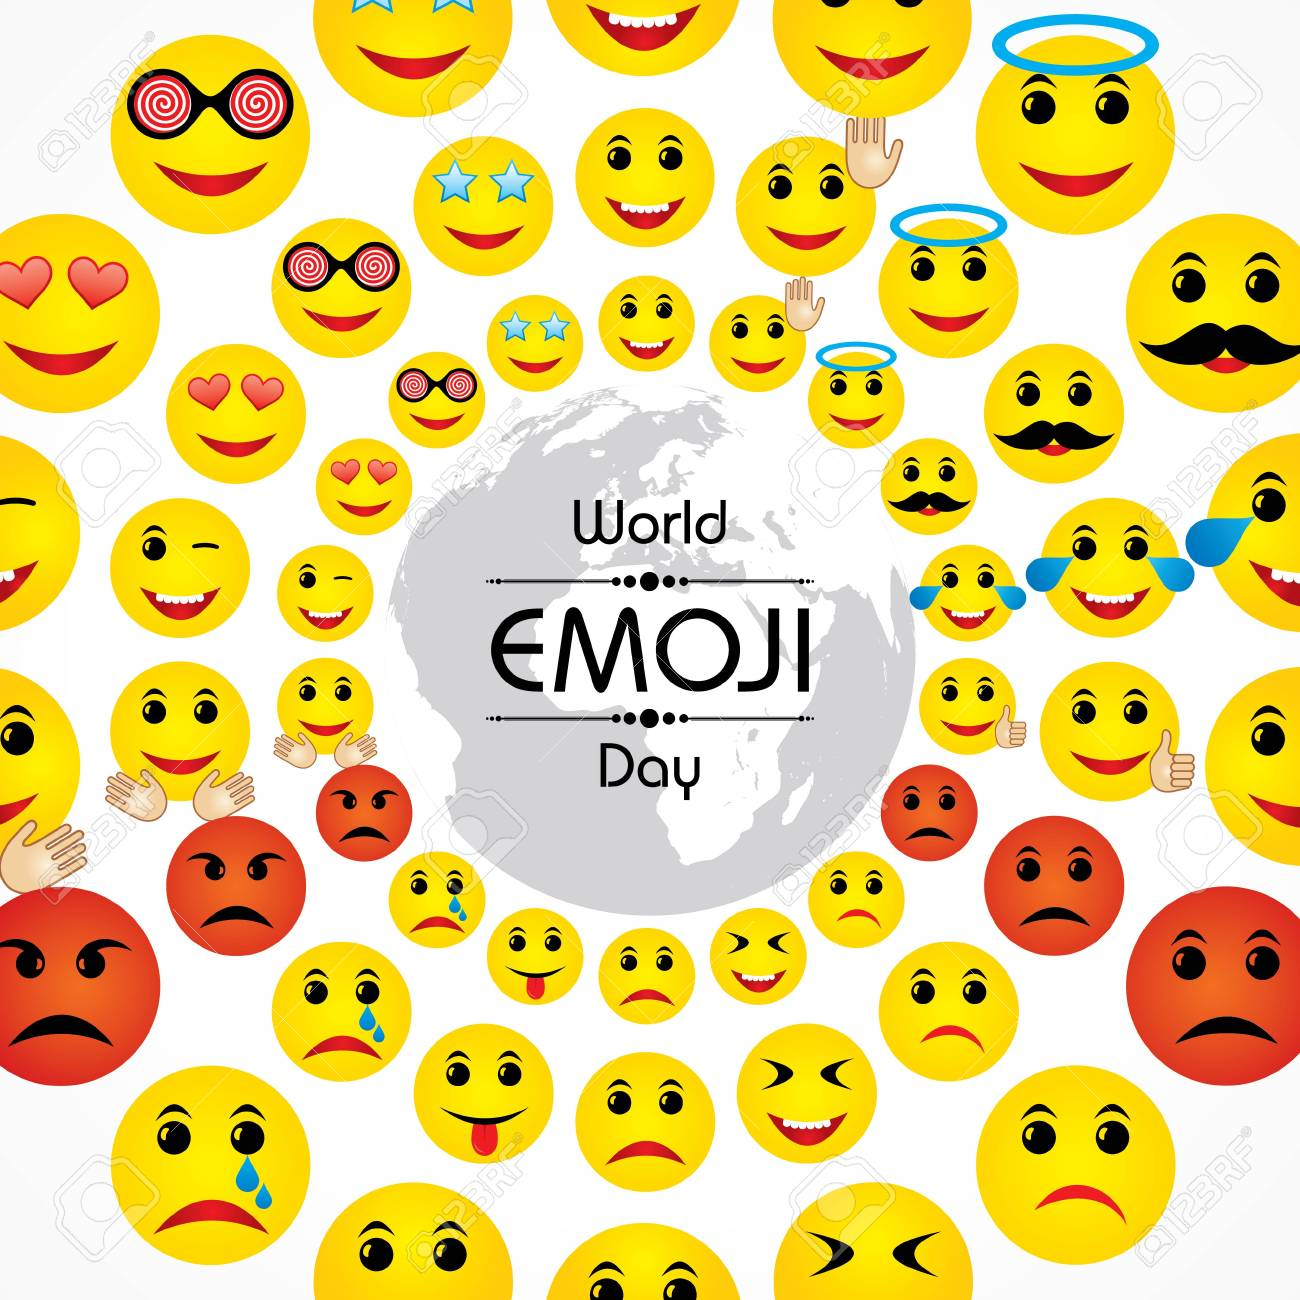 World emoji day - 17 July